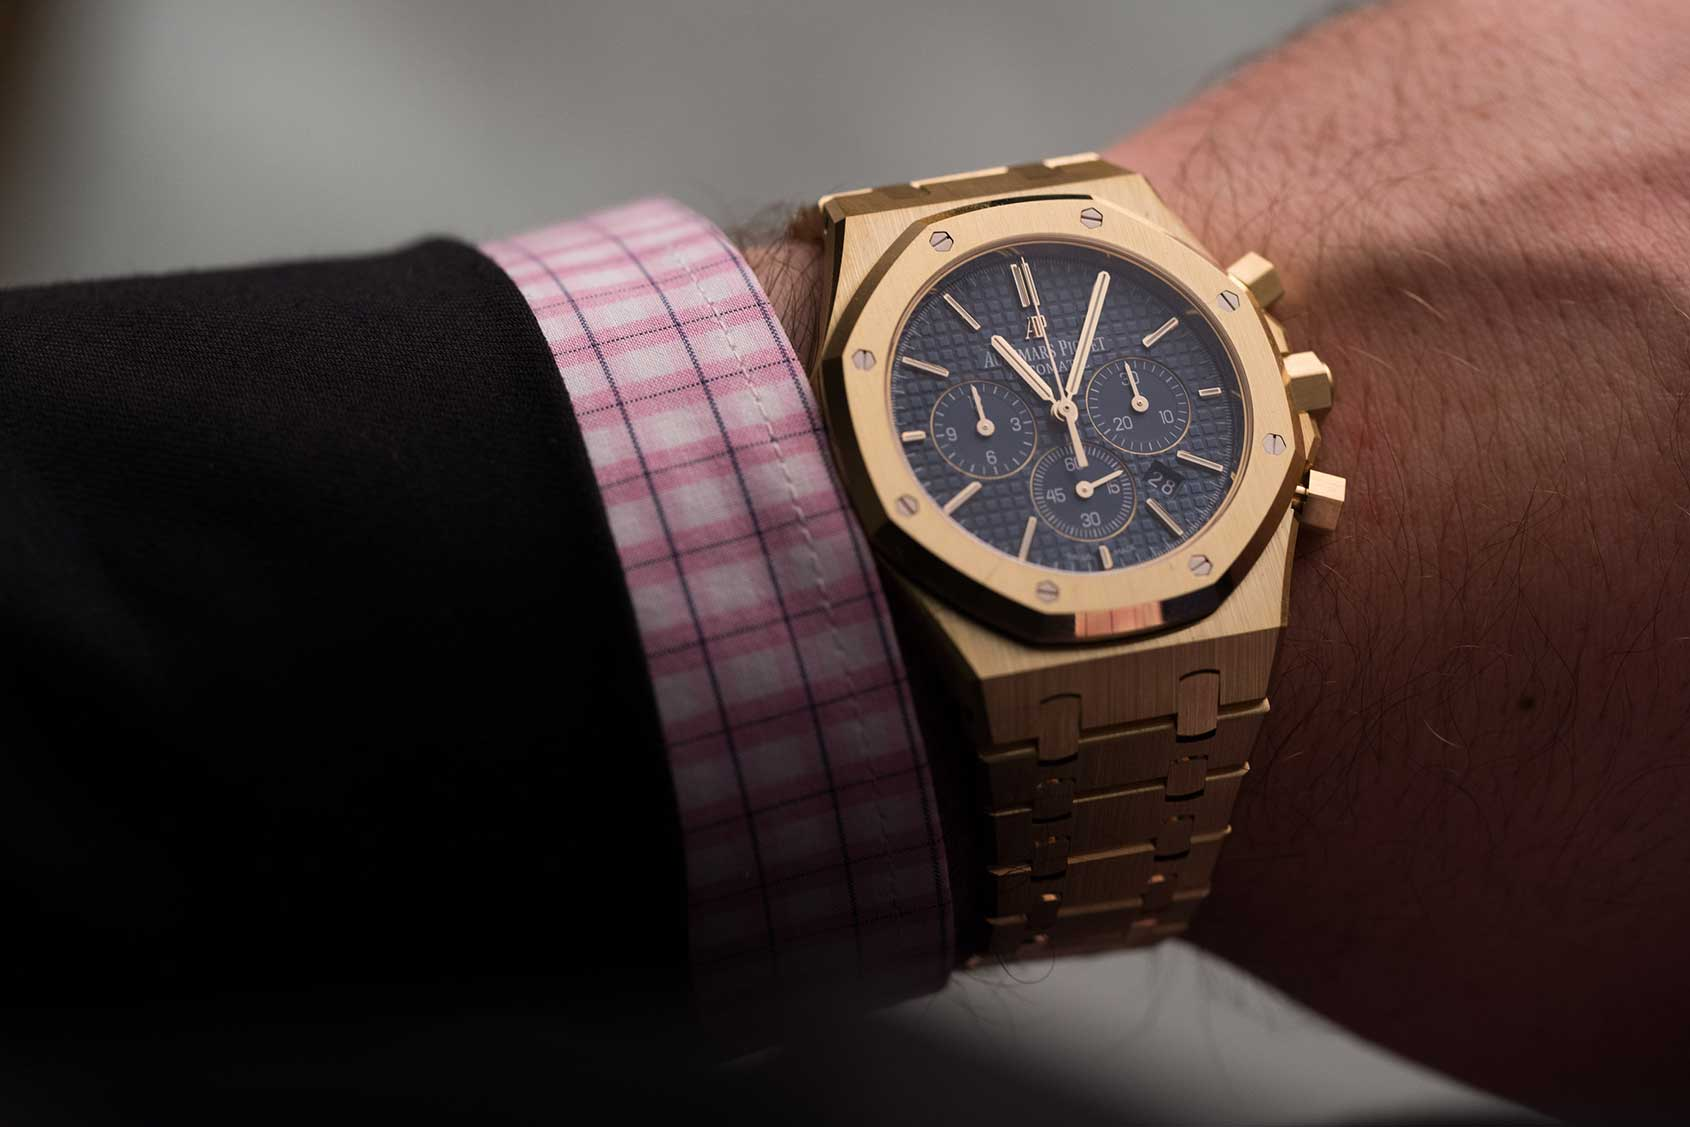 Audemars Piguet Royal Oak Chronograph In Yellow Gold Hands On Review